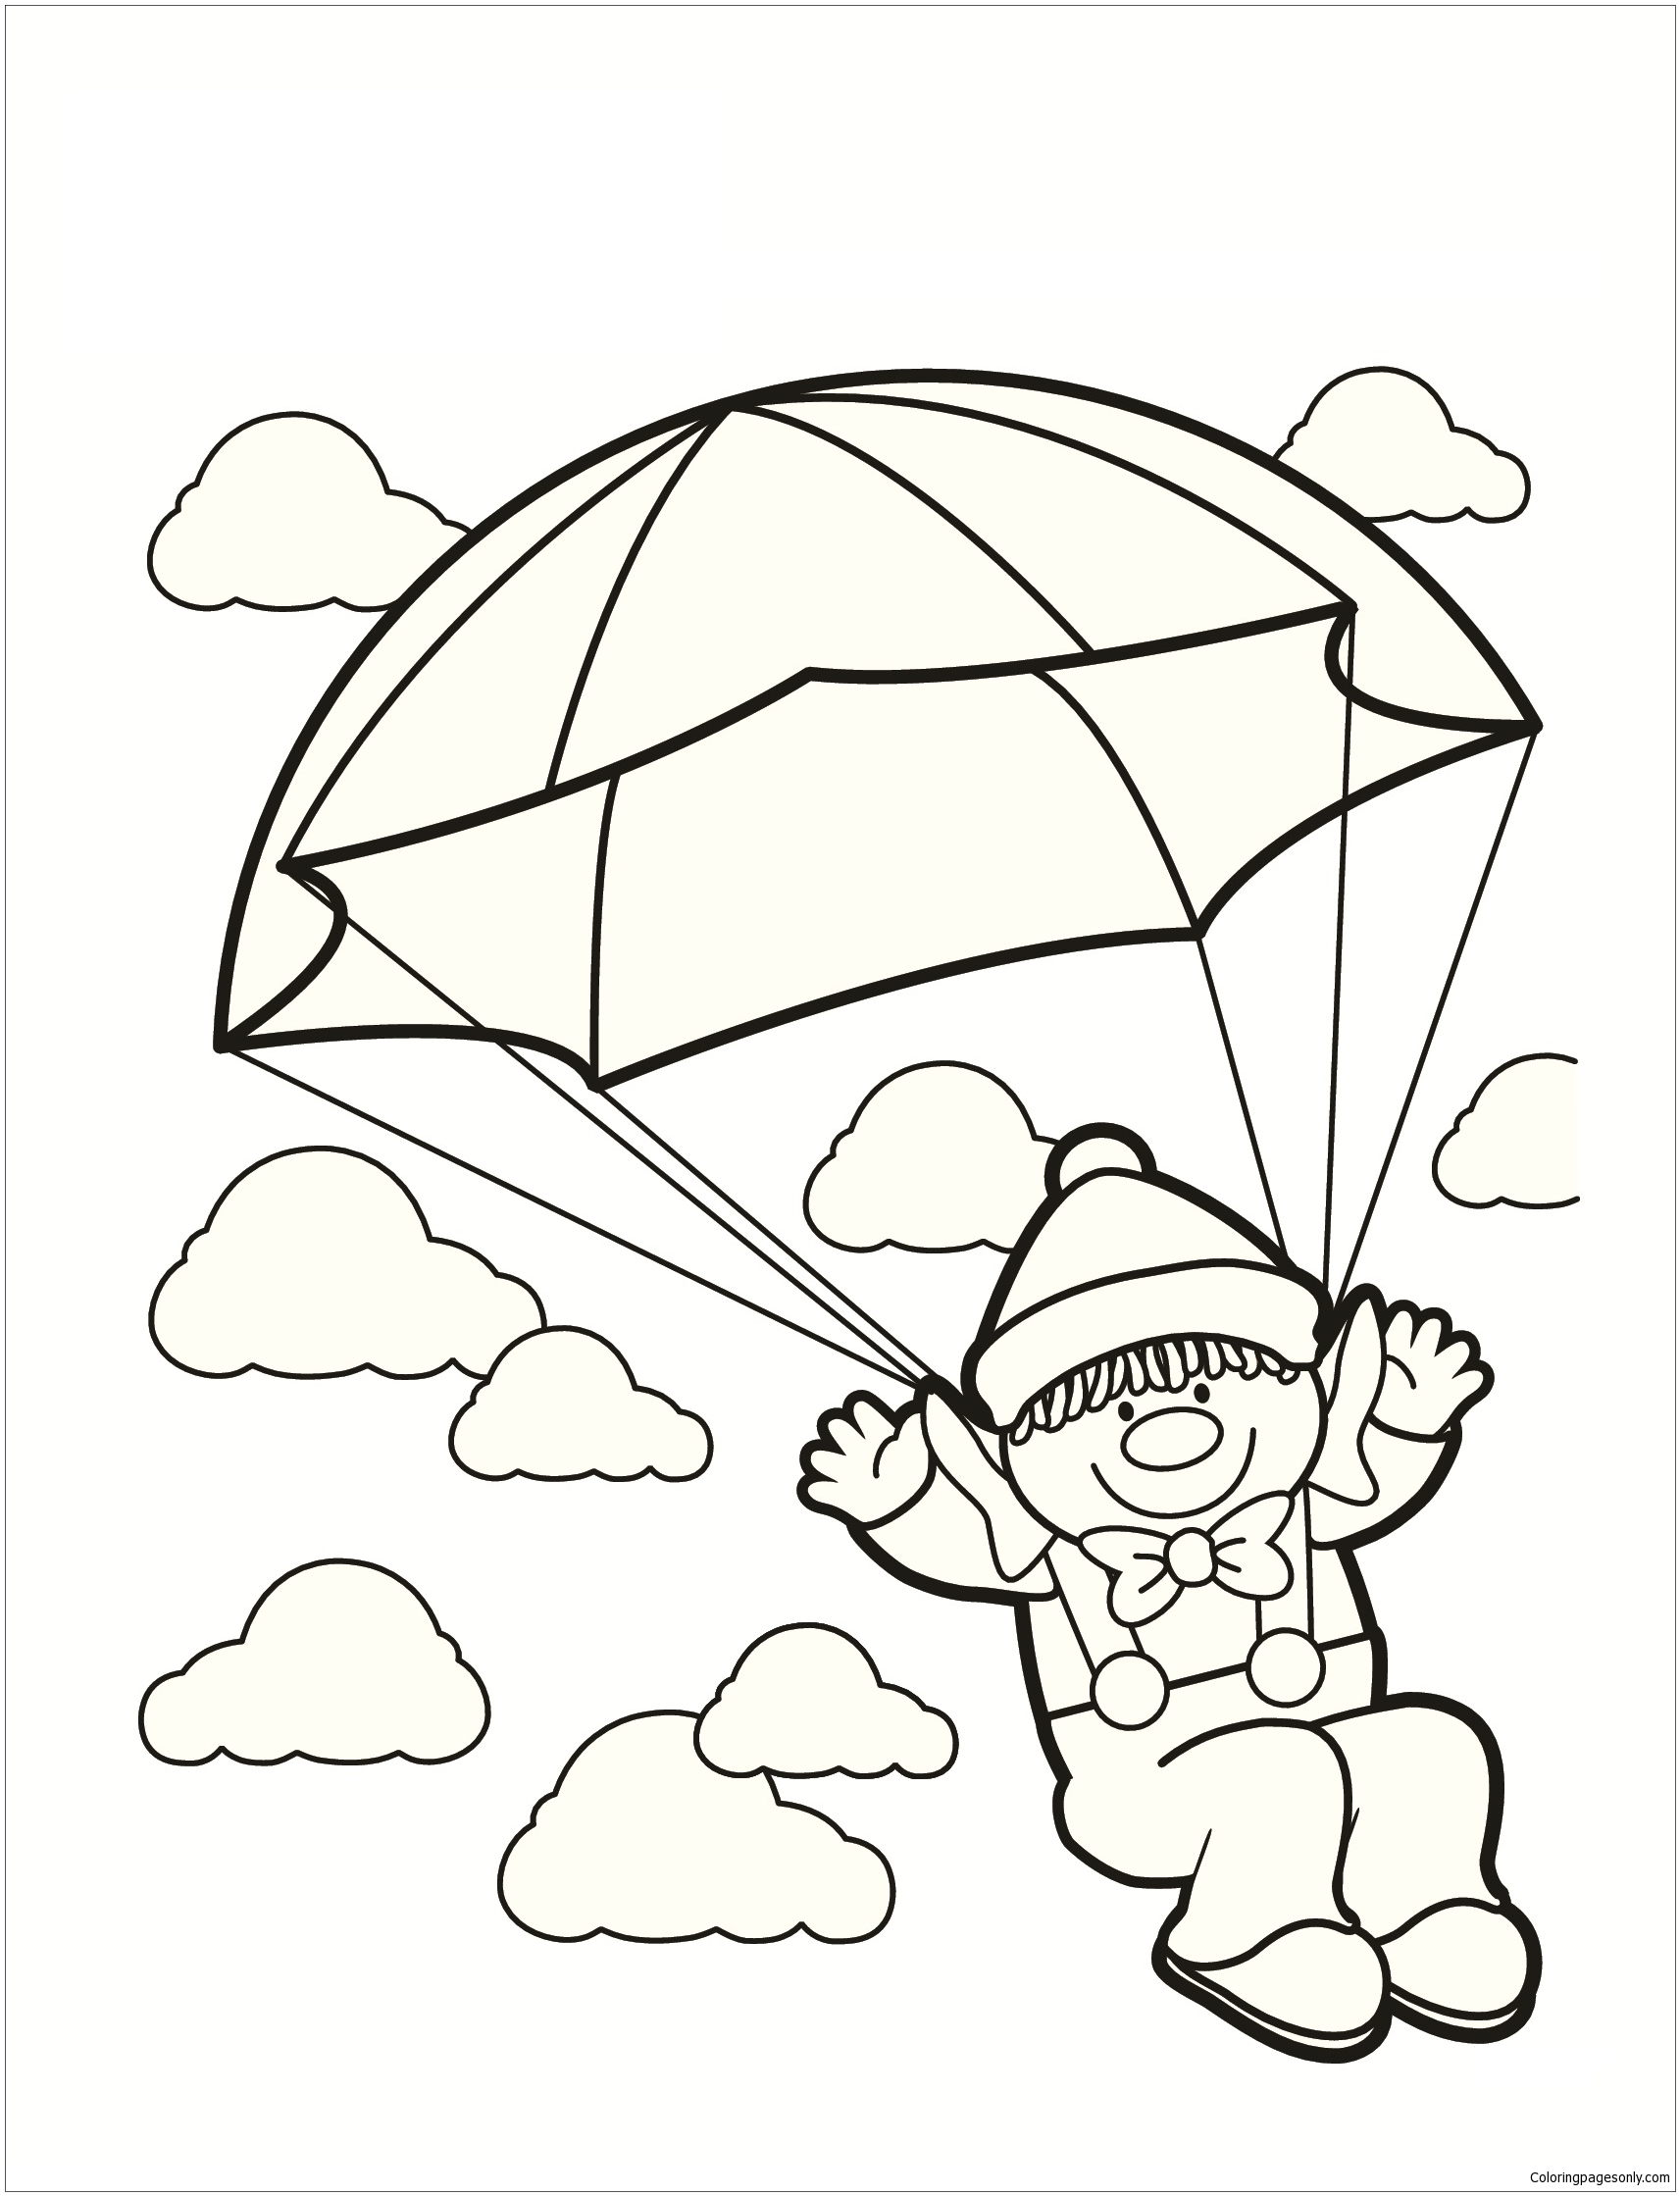 Christmas Coloring Pages Elf On The Shelf At Getcolorings